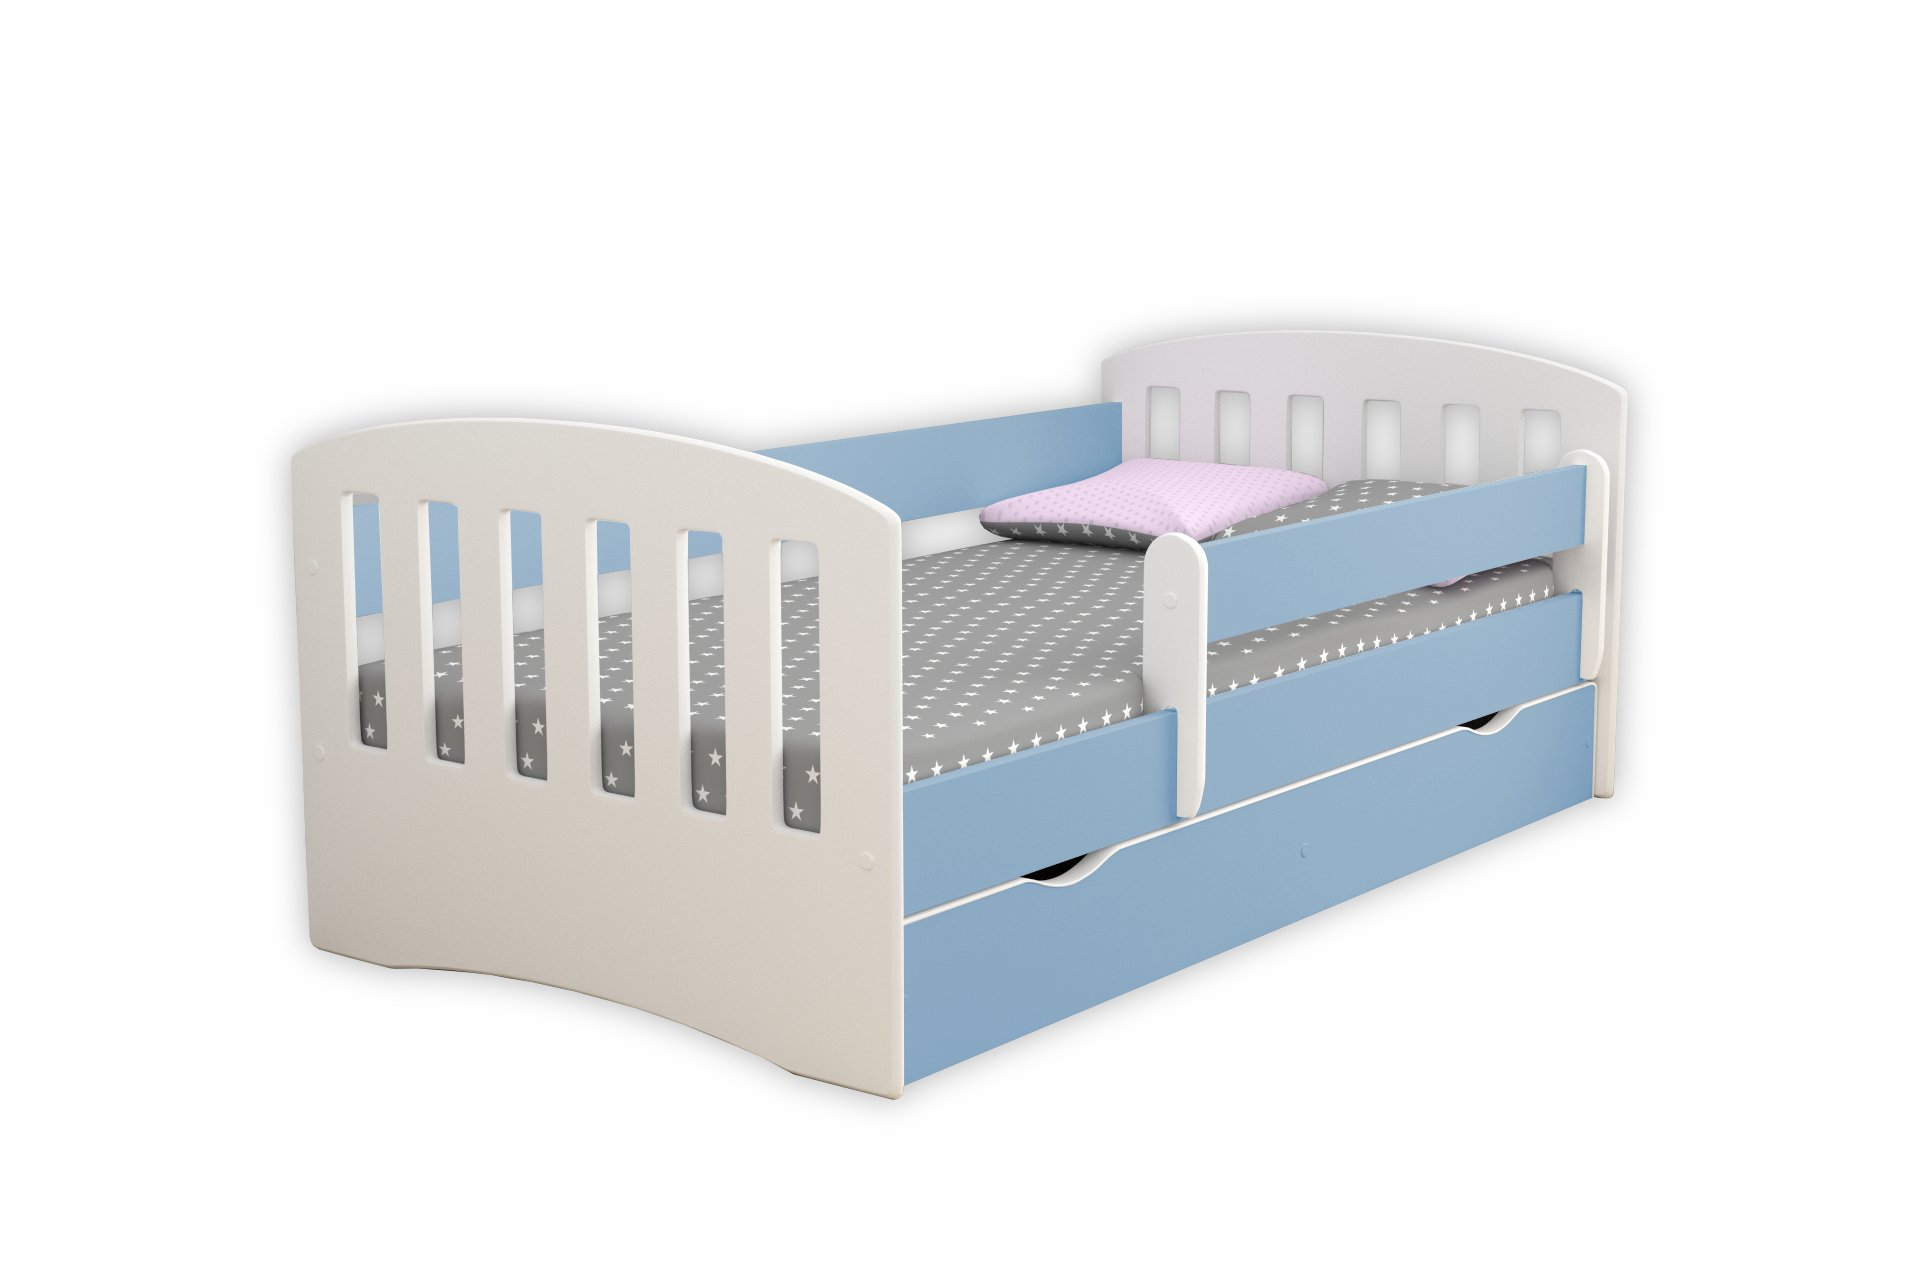 Children's Beds Home Single Bed Classic 1 - For Kids Children Toddler Junior No Mattress and No Drawers Included (Blue, 140x80) Children's Beds Home Bed with barriers - Internal Dimensions 140x80 160x80 180x80 (Externally: 144x90 164x90 184x90) Bed frame with load capacity of 120 kg, Fittings, Installation Instructions, Wodden Slats Included Universal bed entrance - right or left side, front barrier can be removed at later stage. 1